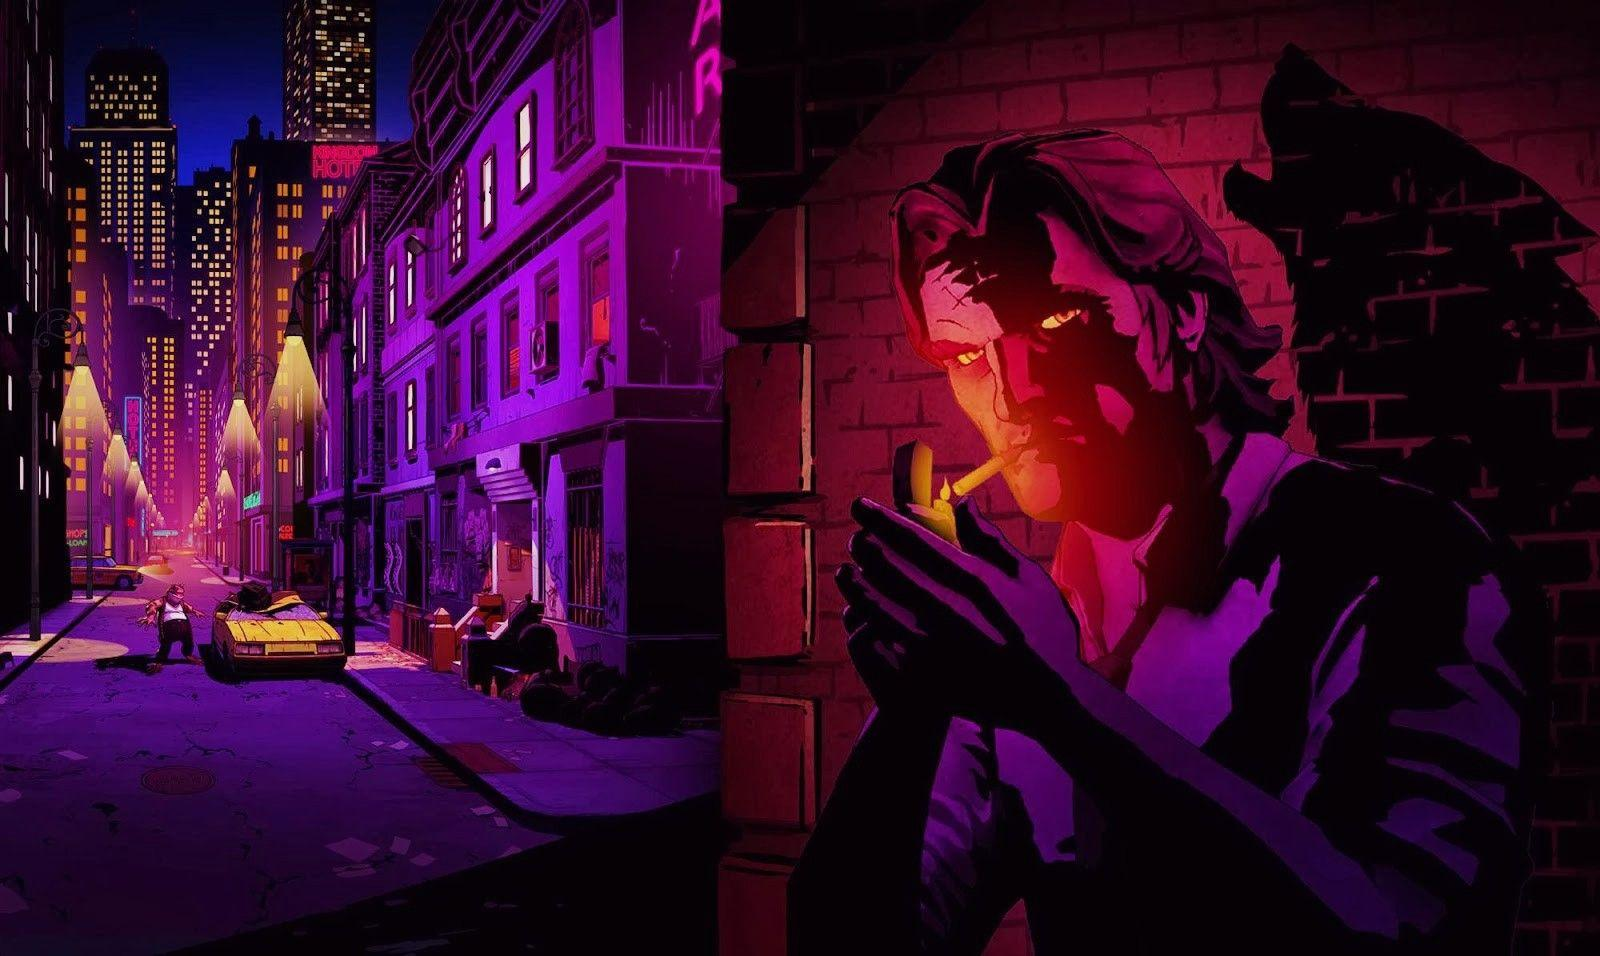 The Wolf Among Us Wallpaper Pc Kolpaper Awesome Free Hd Wallpapers